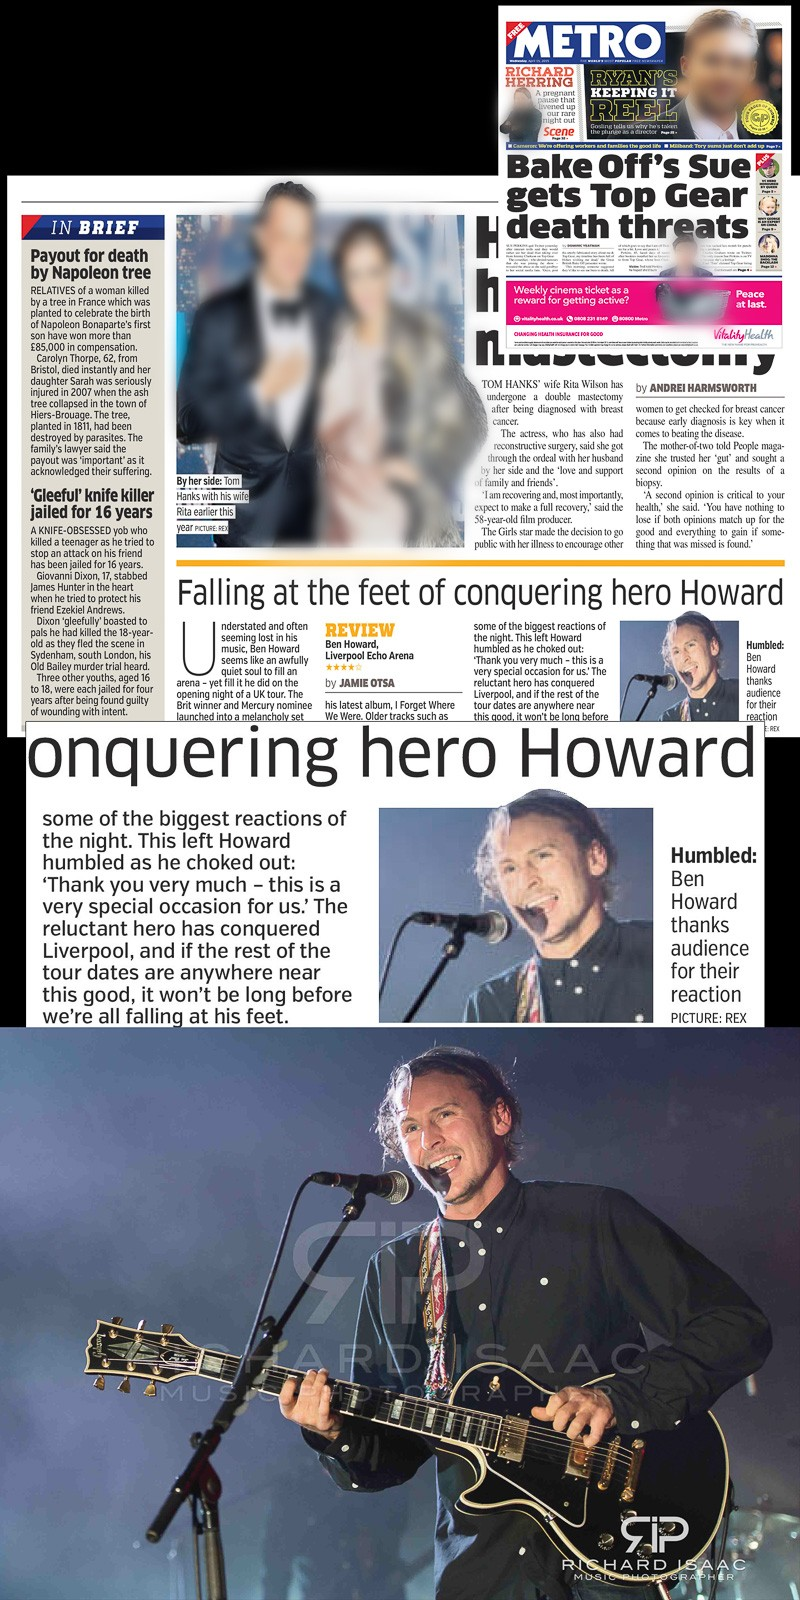 Image usage - Metro 15 April 2015 - Ben Howard live at Brixton Academy December 2015, used in editorial for Ben Howard live at Liverpool Echo Arena April 2015